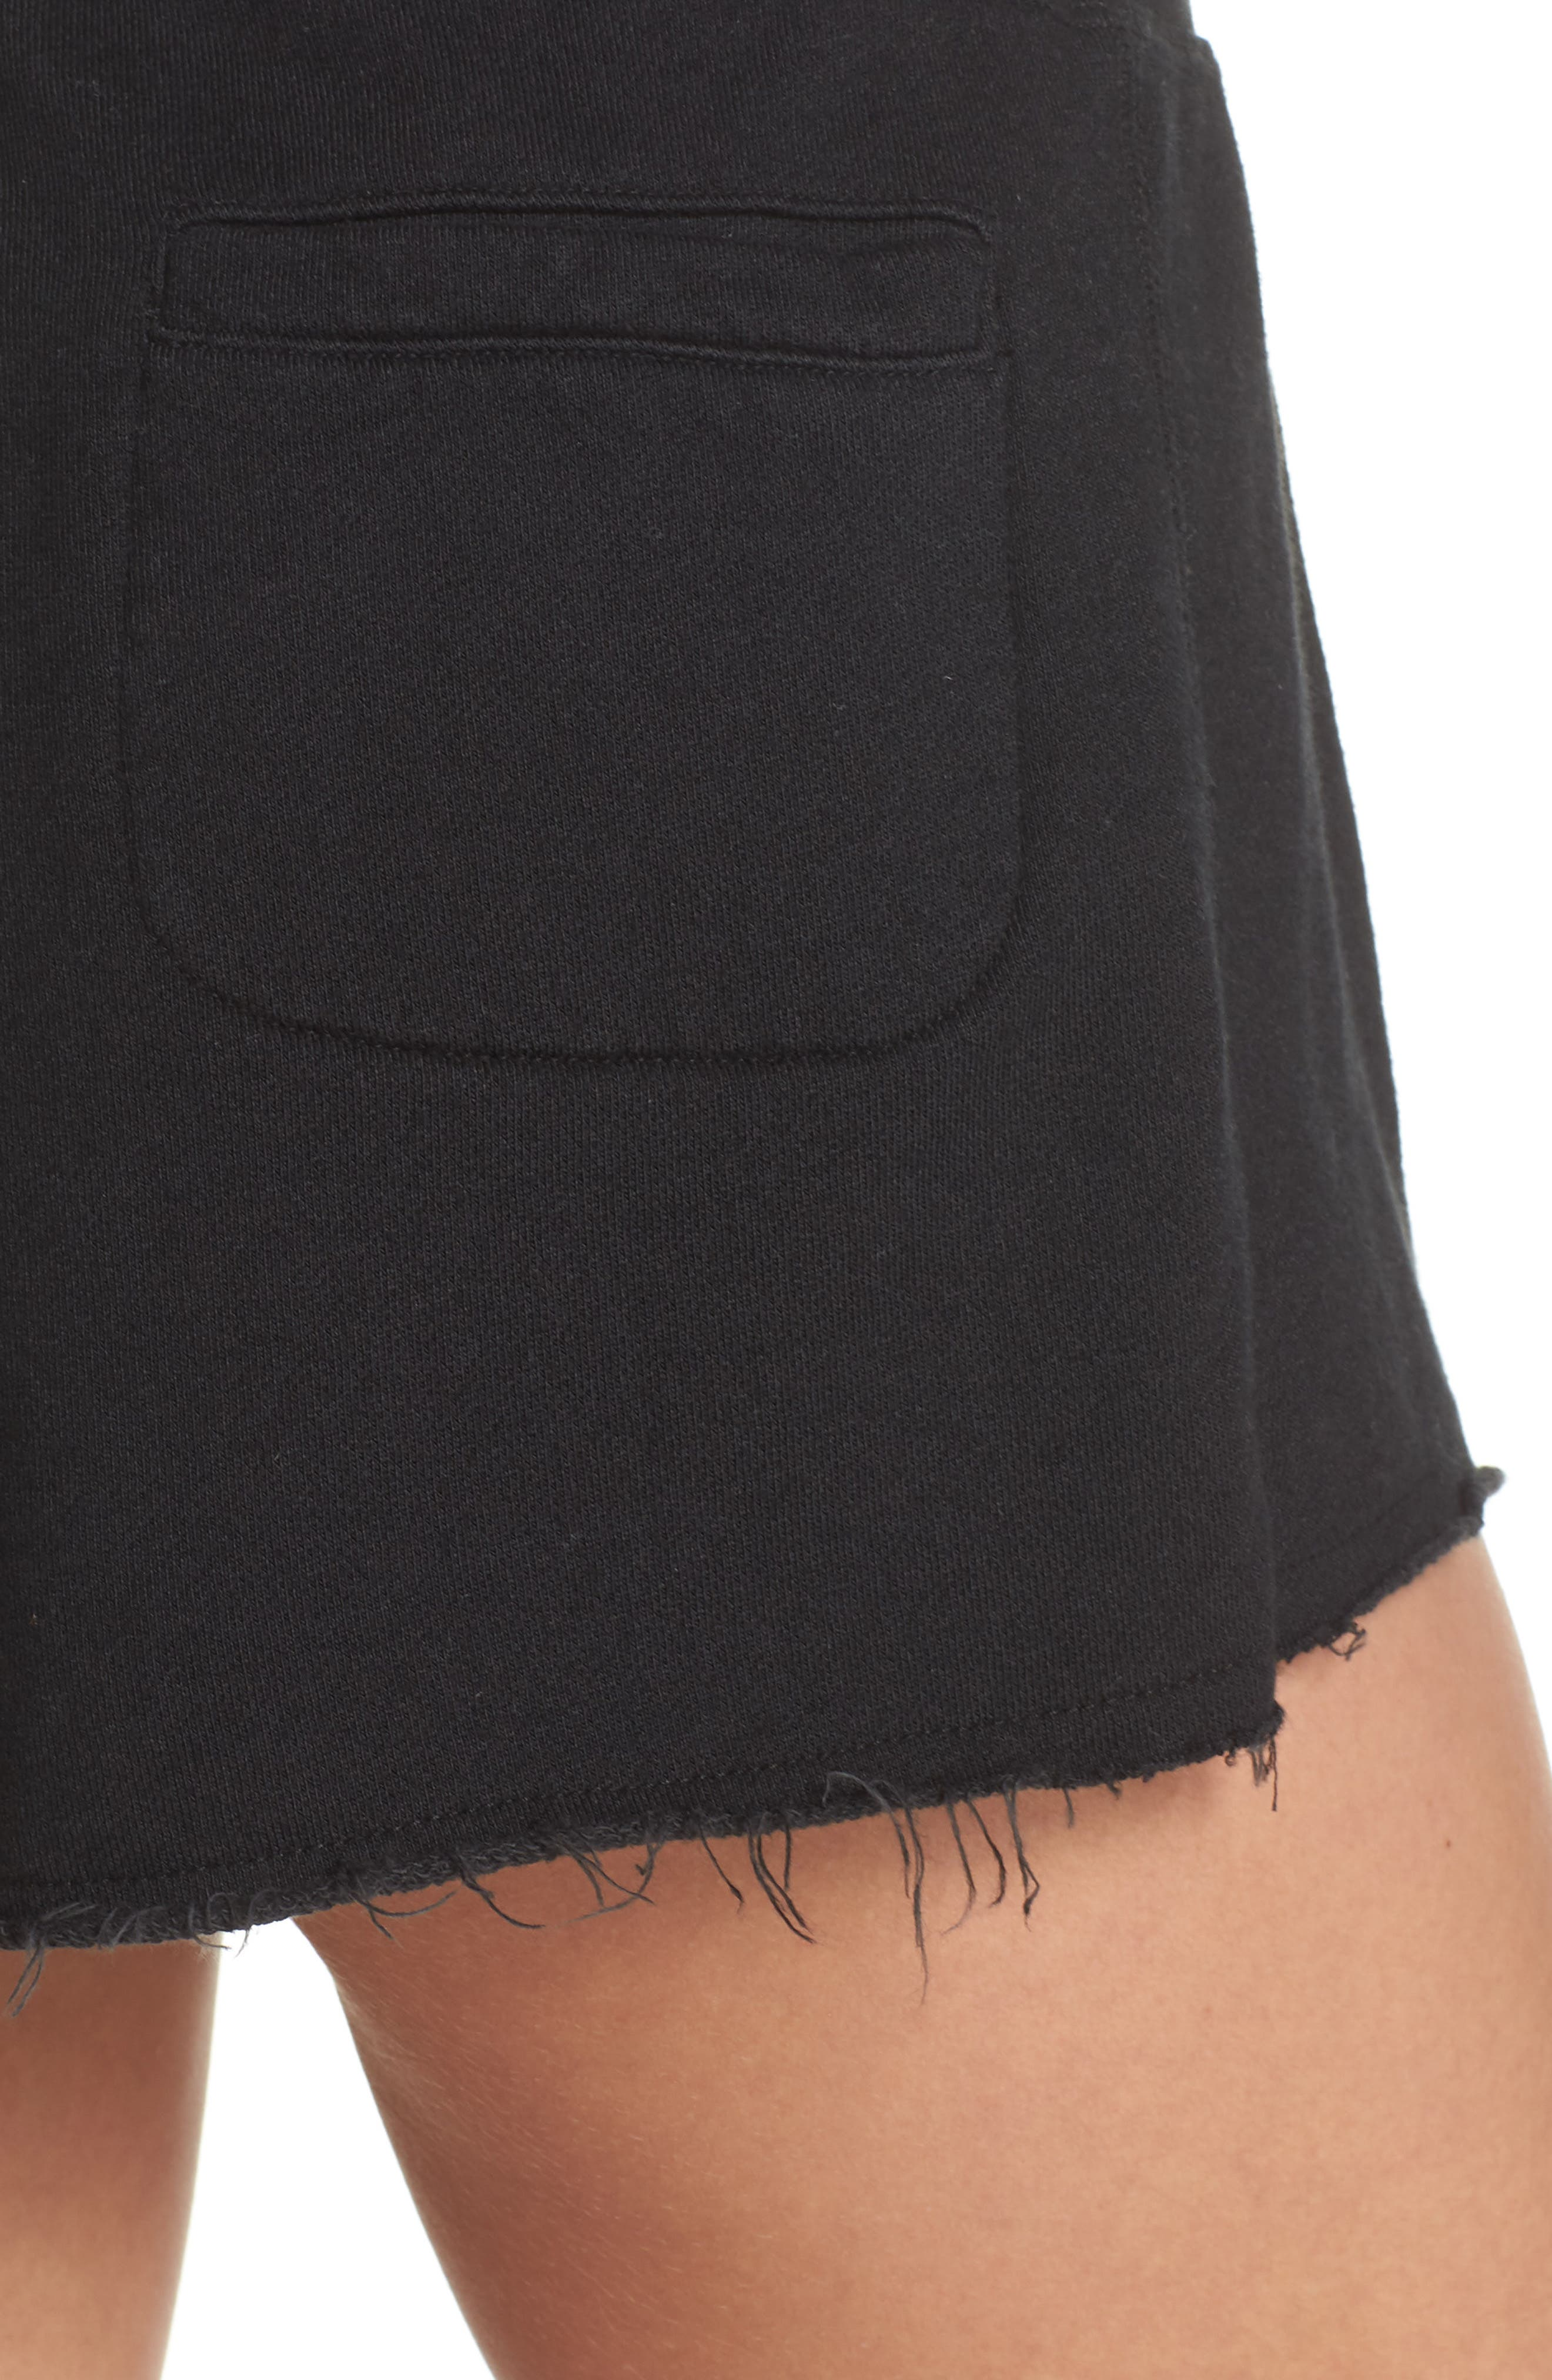 French Terry Sleep Shorts,                             Alternate thumbnail 4, color,                             FADED BLACK